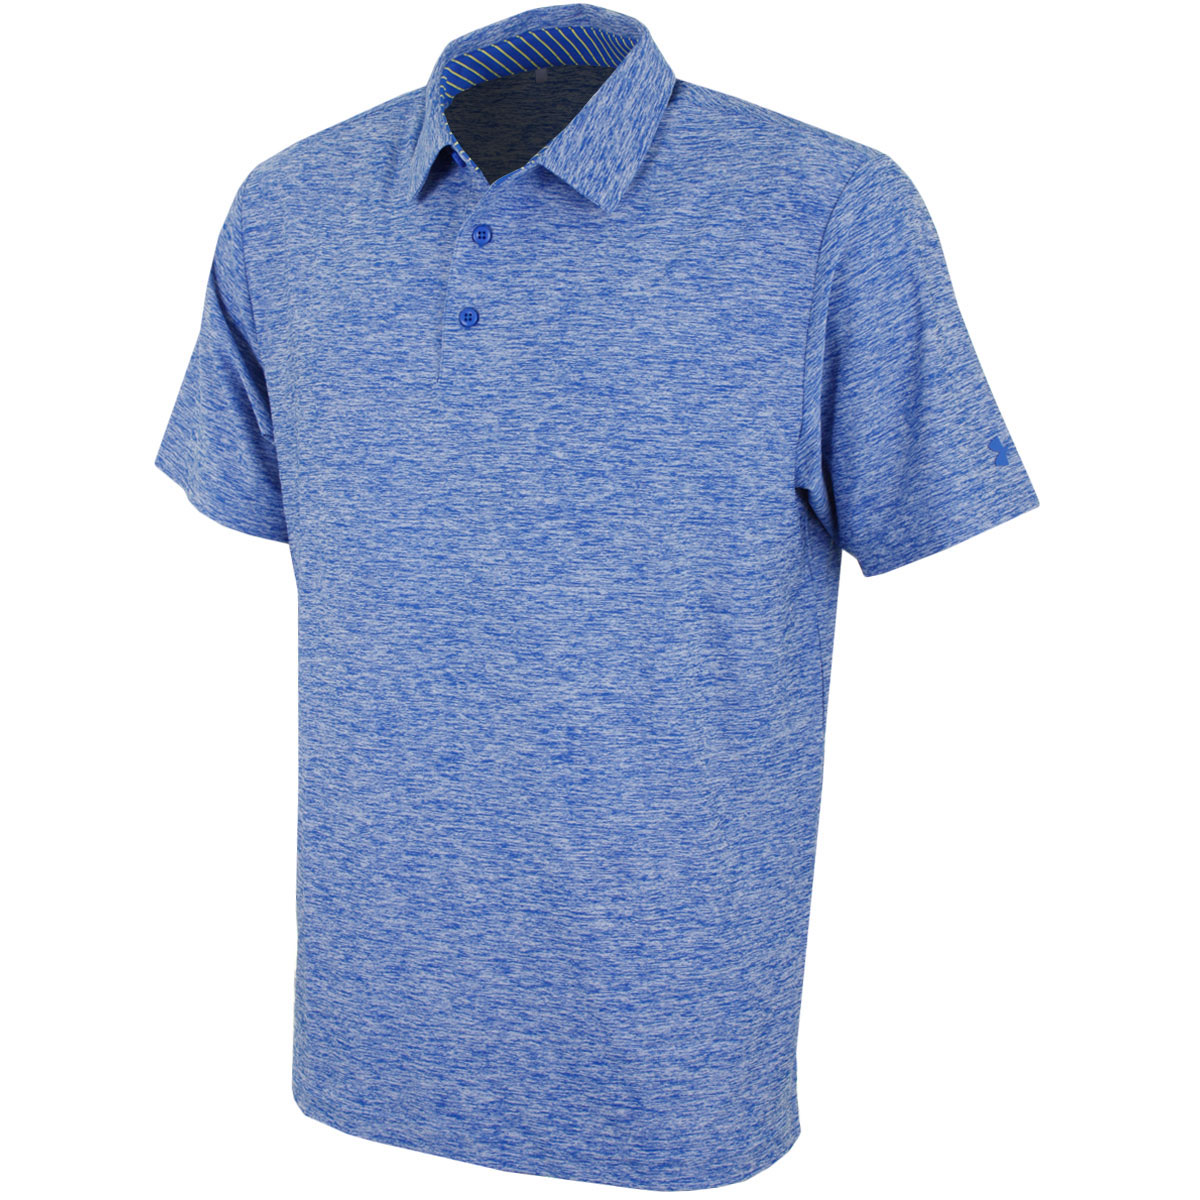 Under Armour 2016 Mens Crestable Playoff Performance Tech